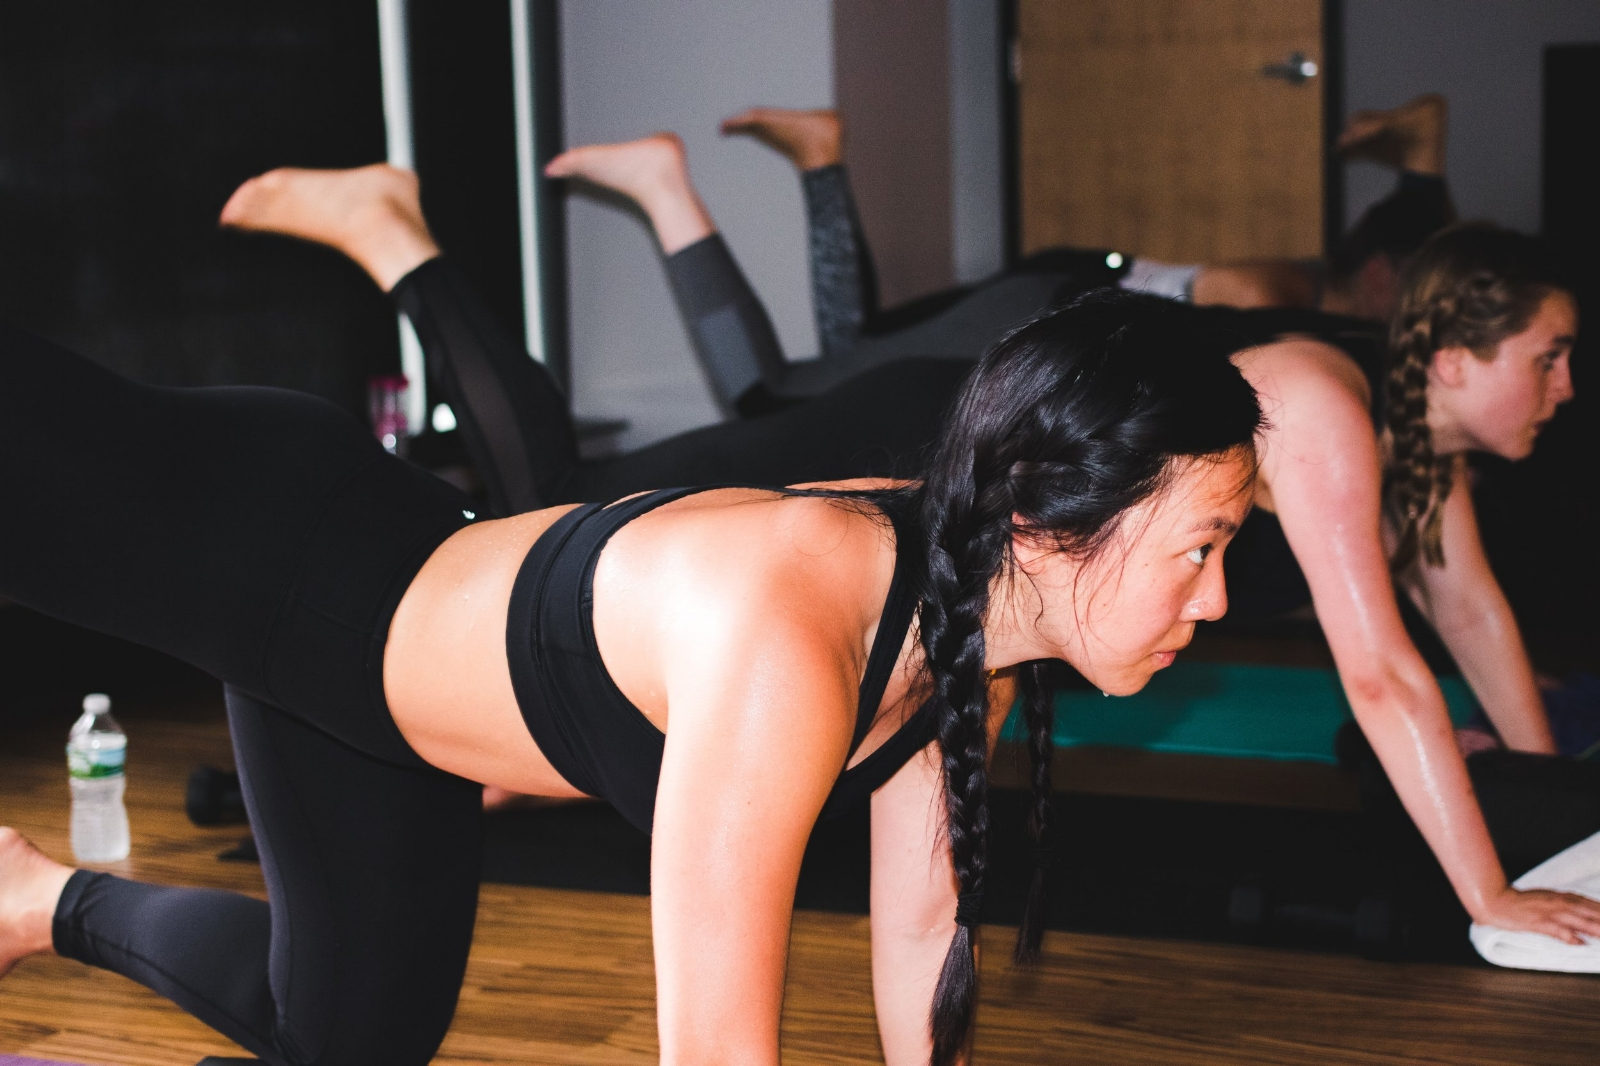 Photo by Bizzy Coffee Team //Leggings:  Lululemon WunderUnder Hi-Rise 7/8 Length  // Sports Bra:  Lululemon    Never be afraid to workout in just your sports bra. Even if no one else is. Even if you don't have a 6-pack. Even if you think other people will stare.